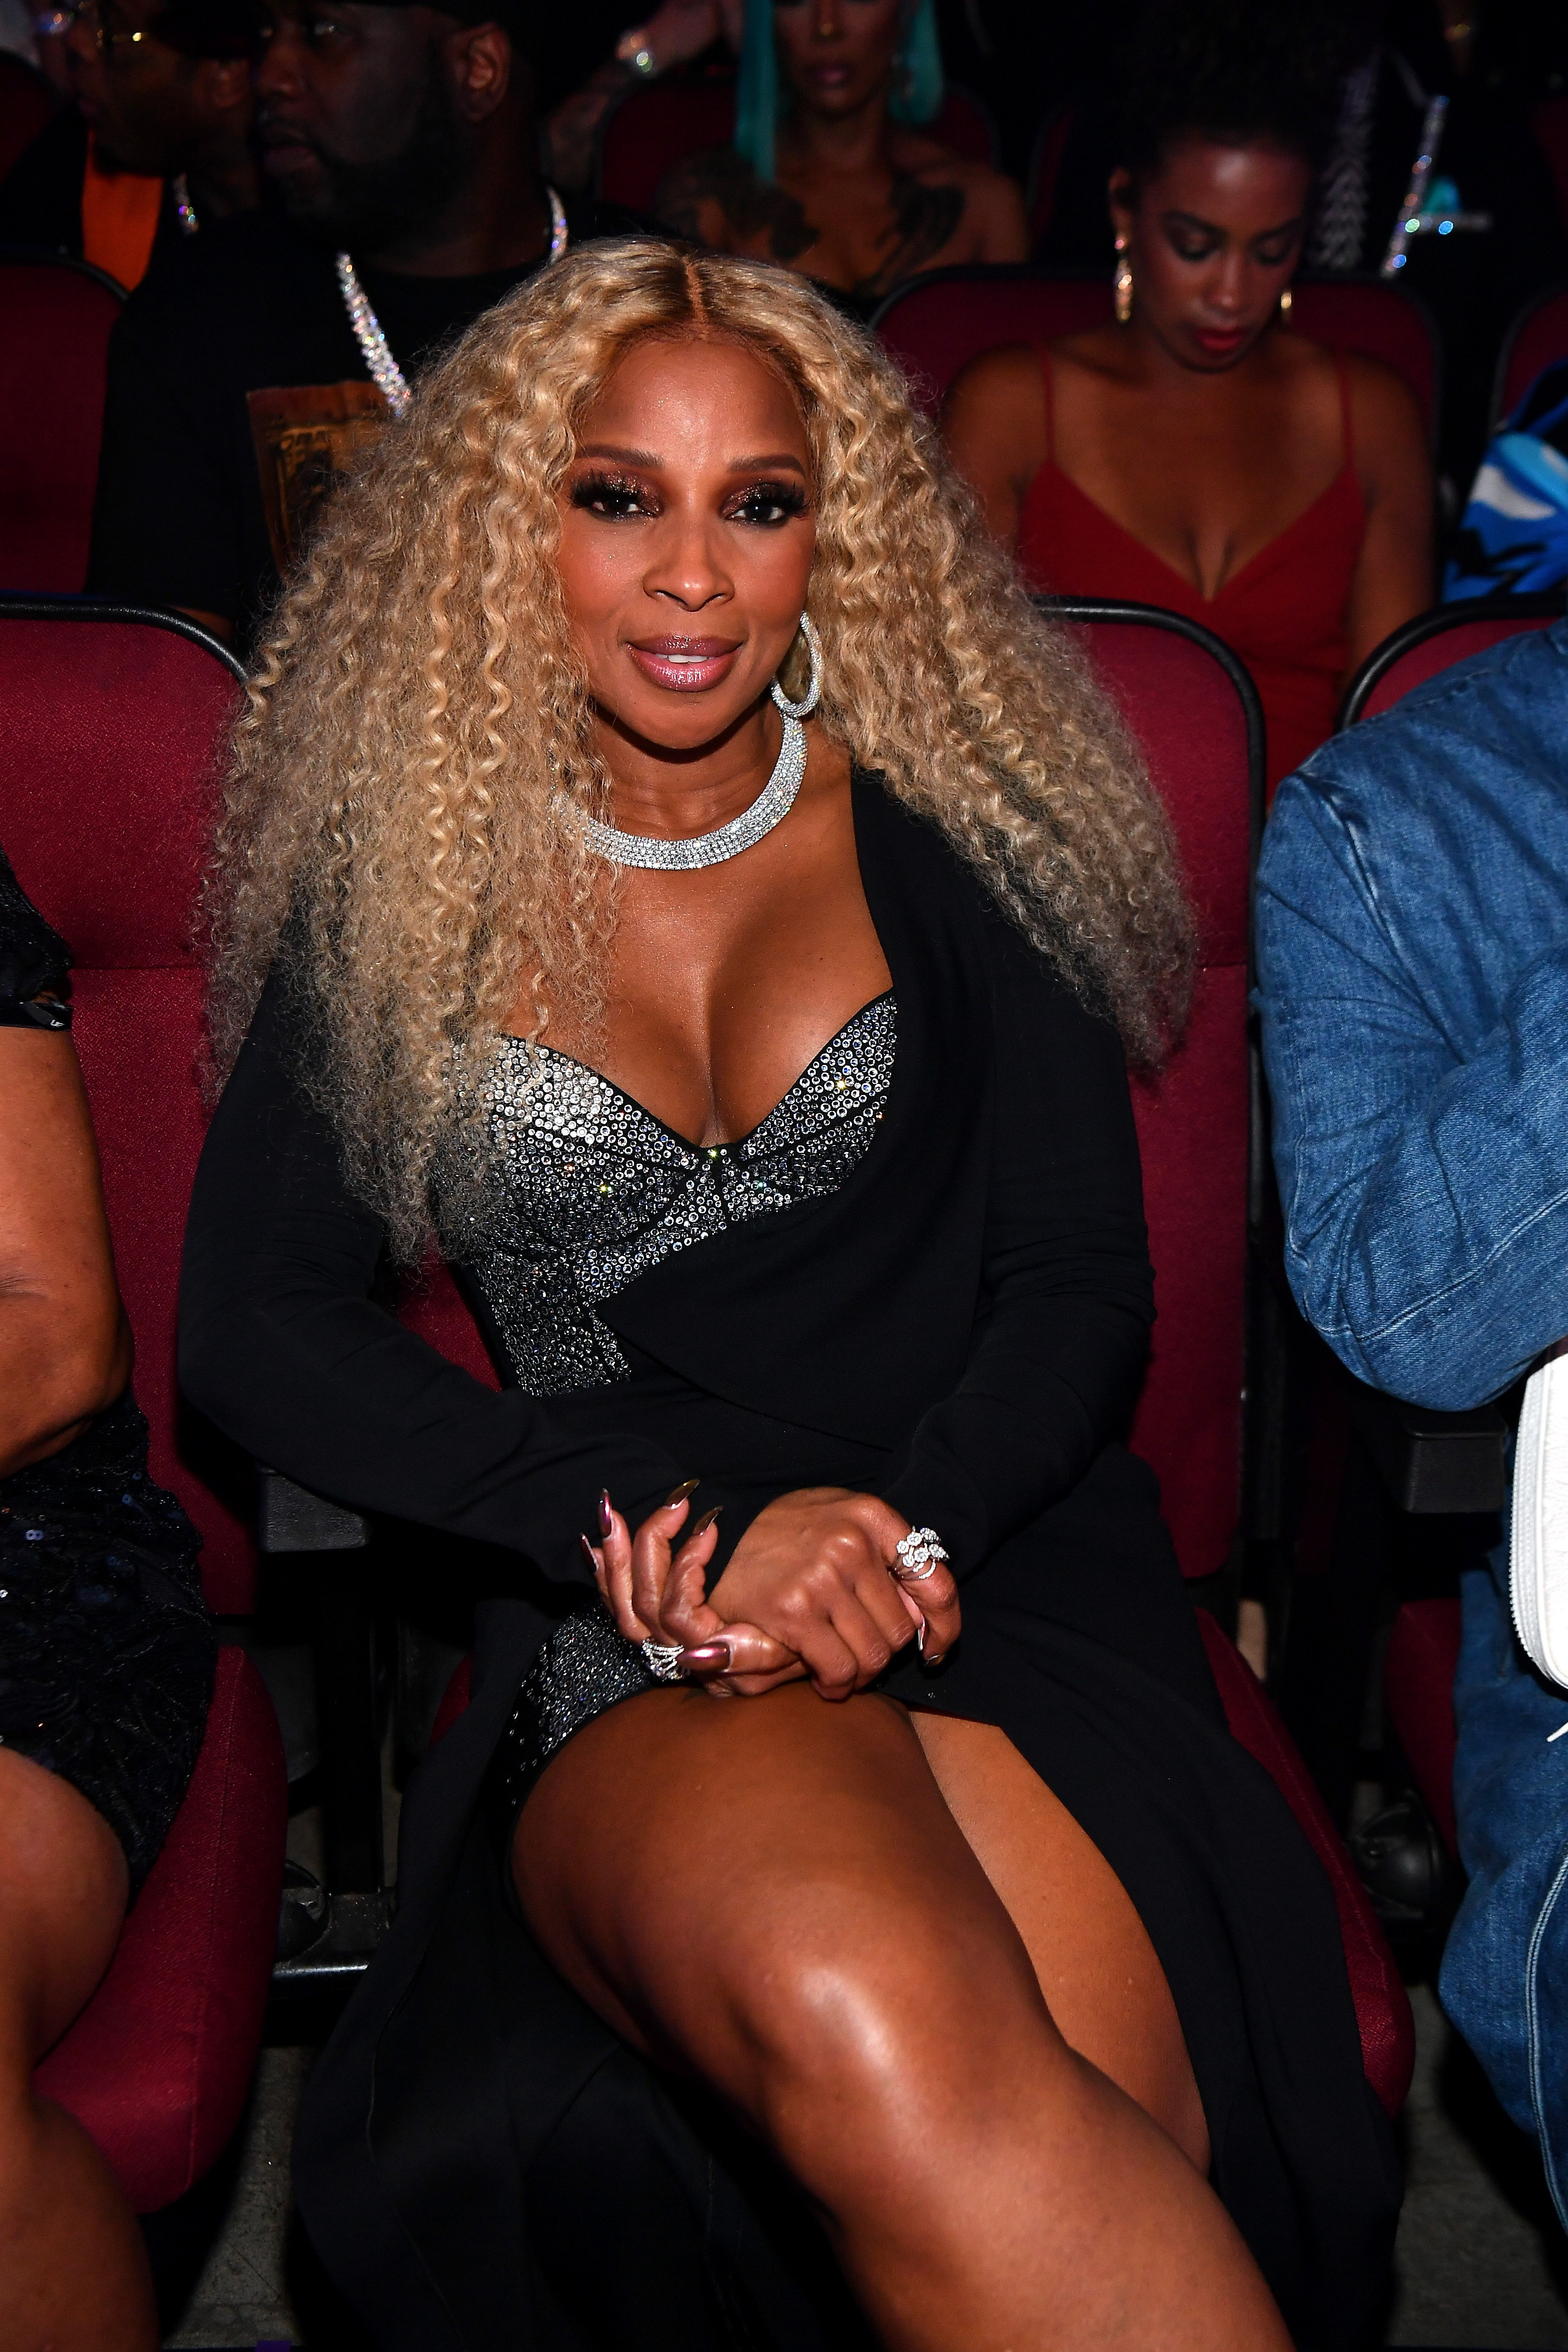 Mary J. Blige seen in the audience at the 2019 BET Awards at Microsoft Theater on June 23, 2019. | Photo: GettyImages